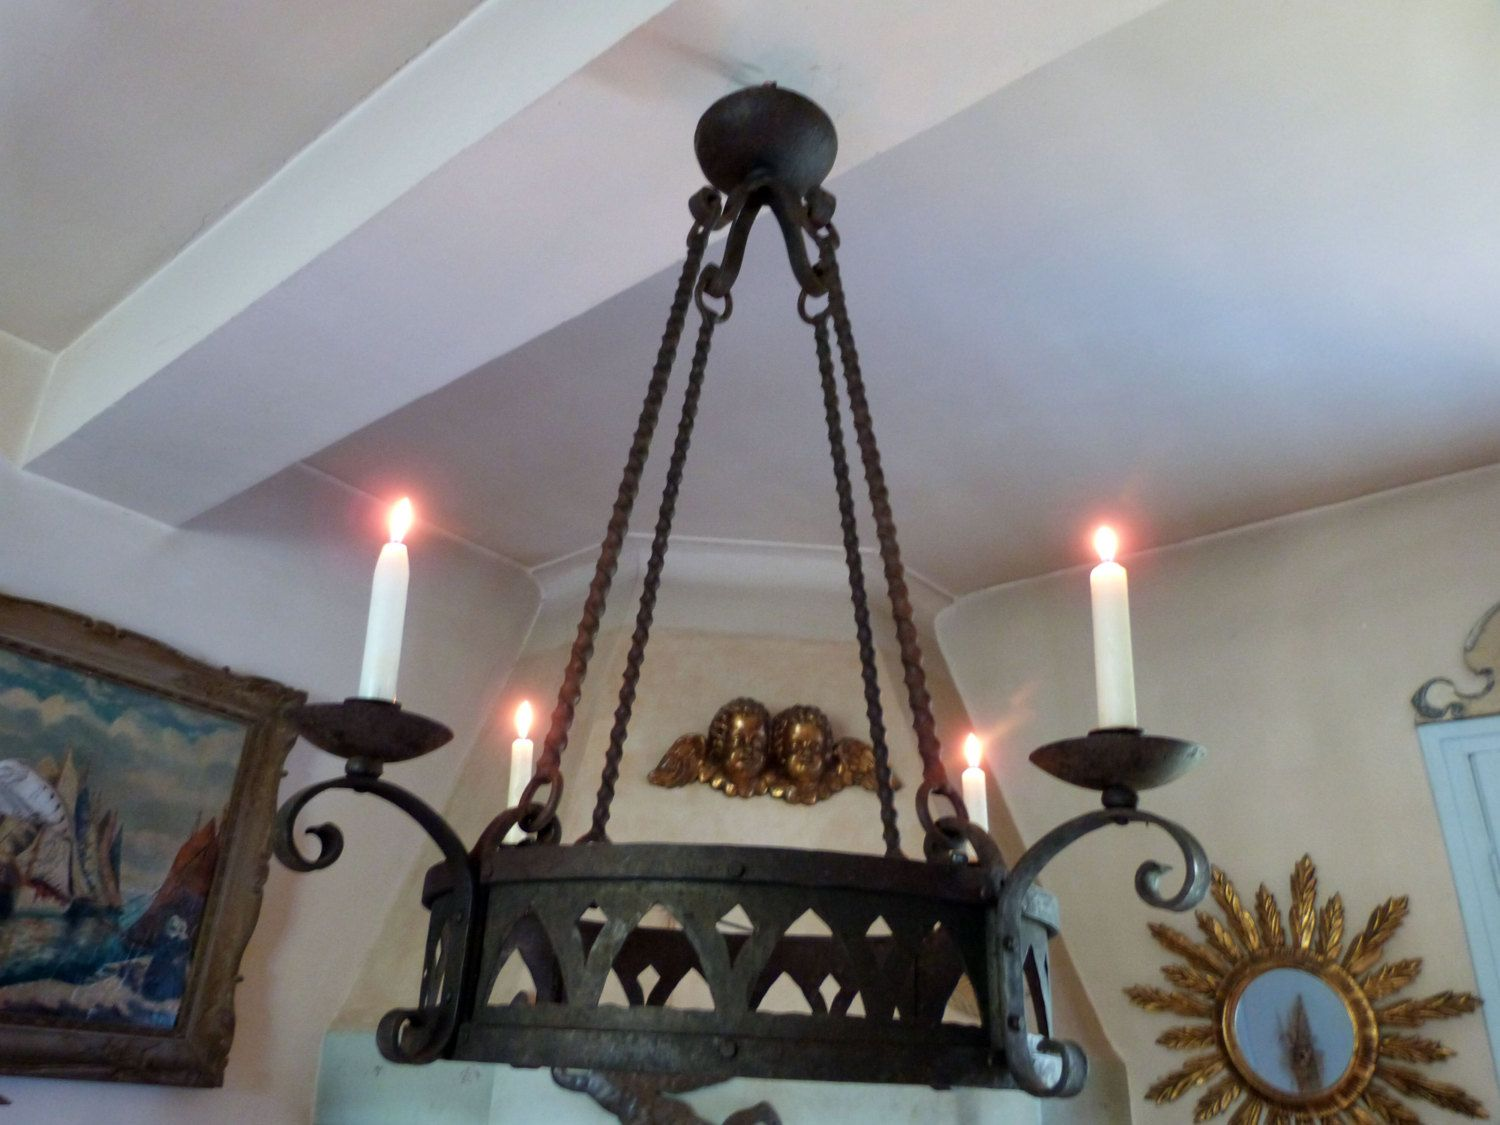 antique 1800s french iron chandelier lighting fixture ceiling